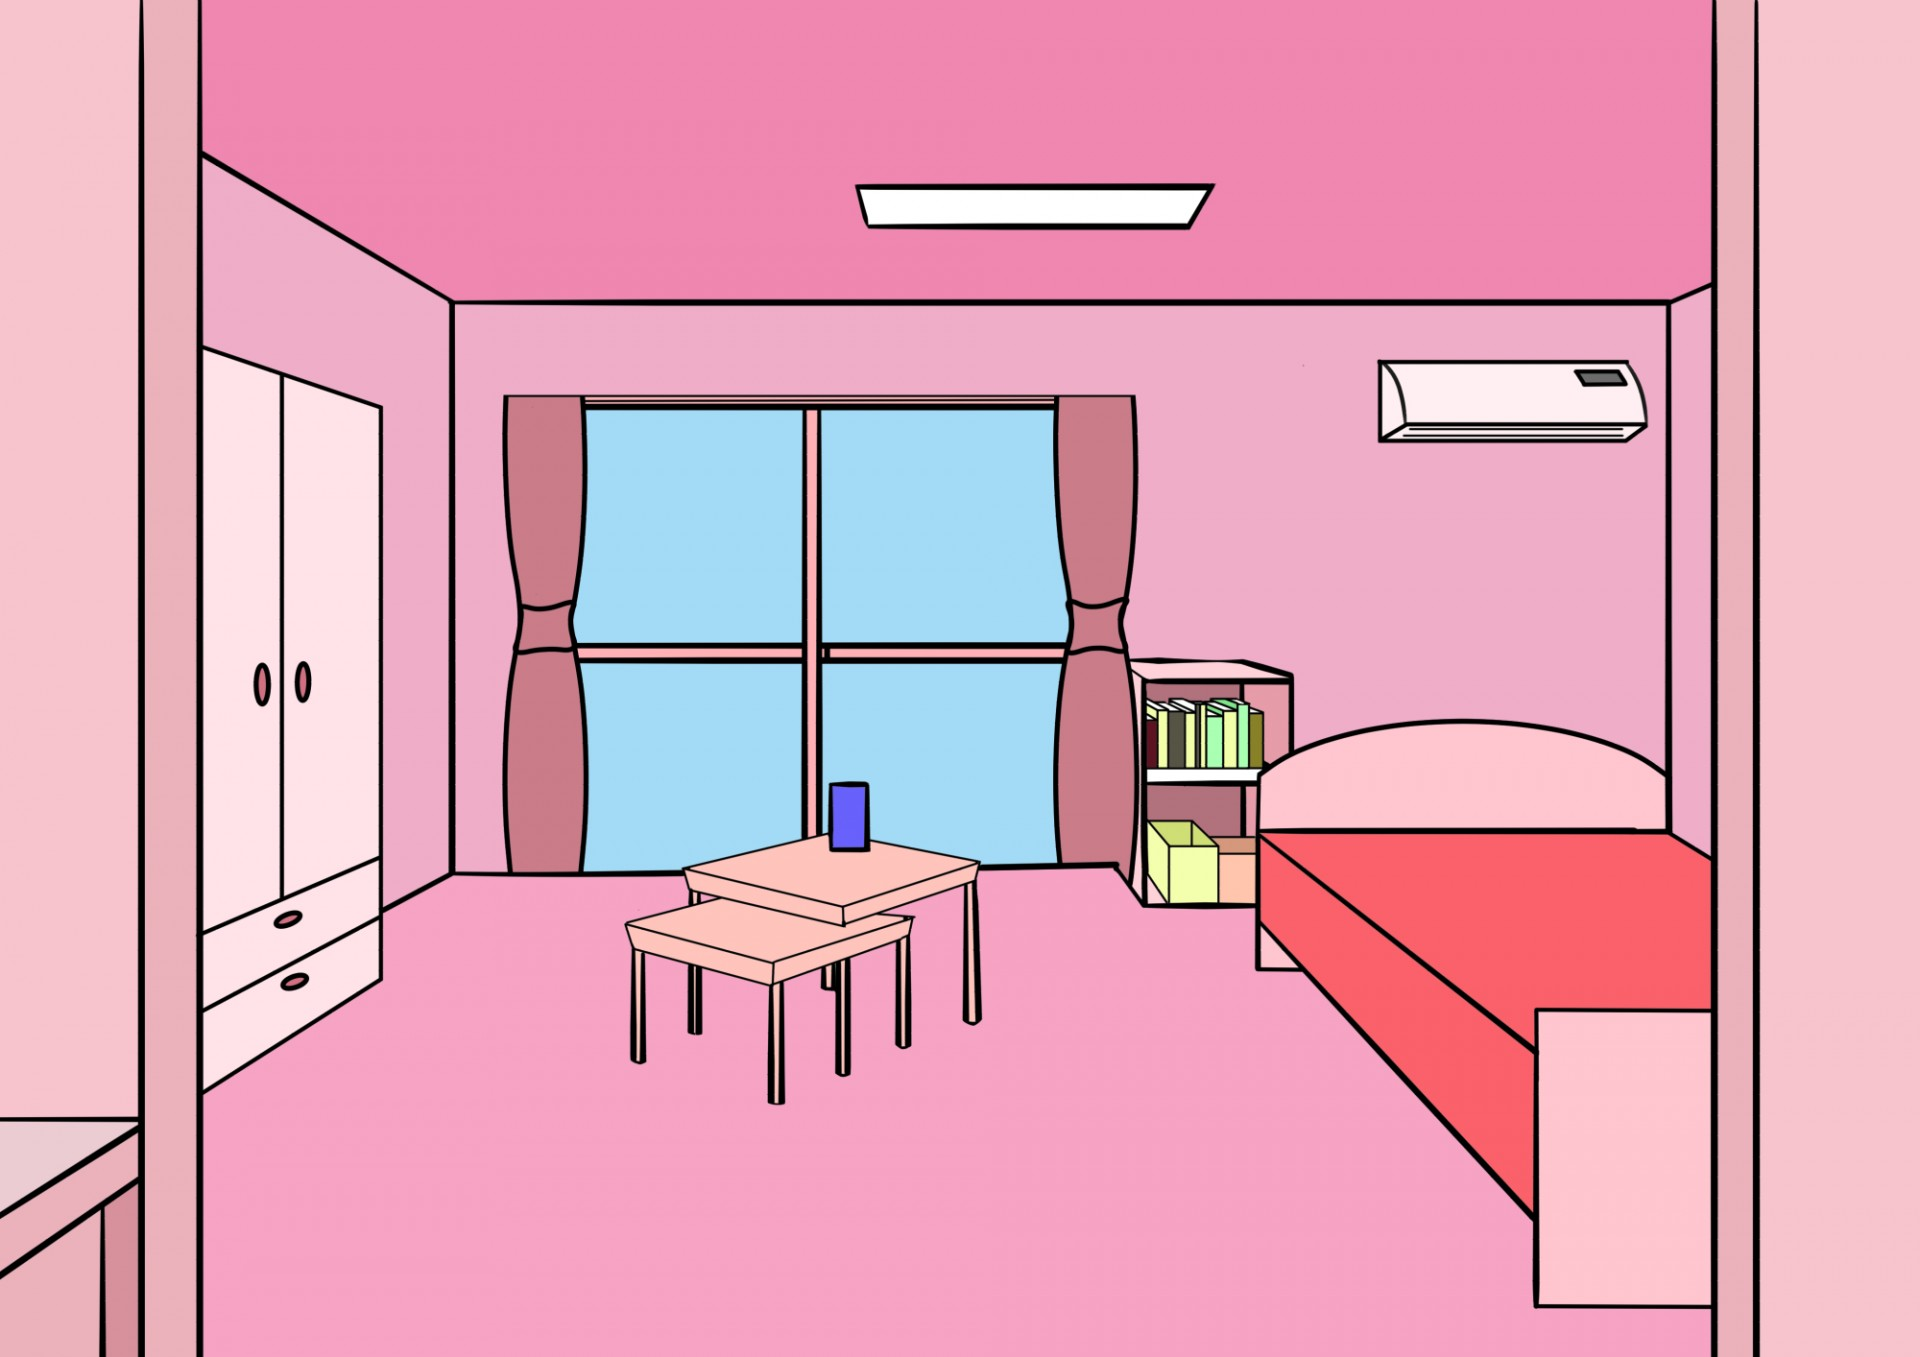 Bedroom clipart background. Room free stock photo